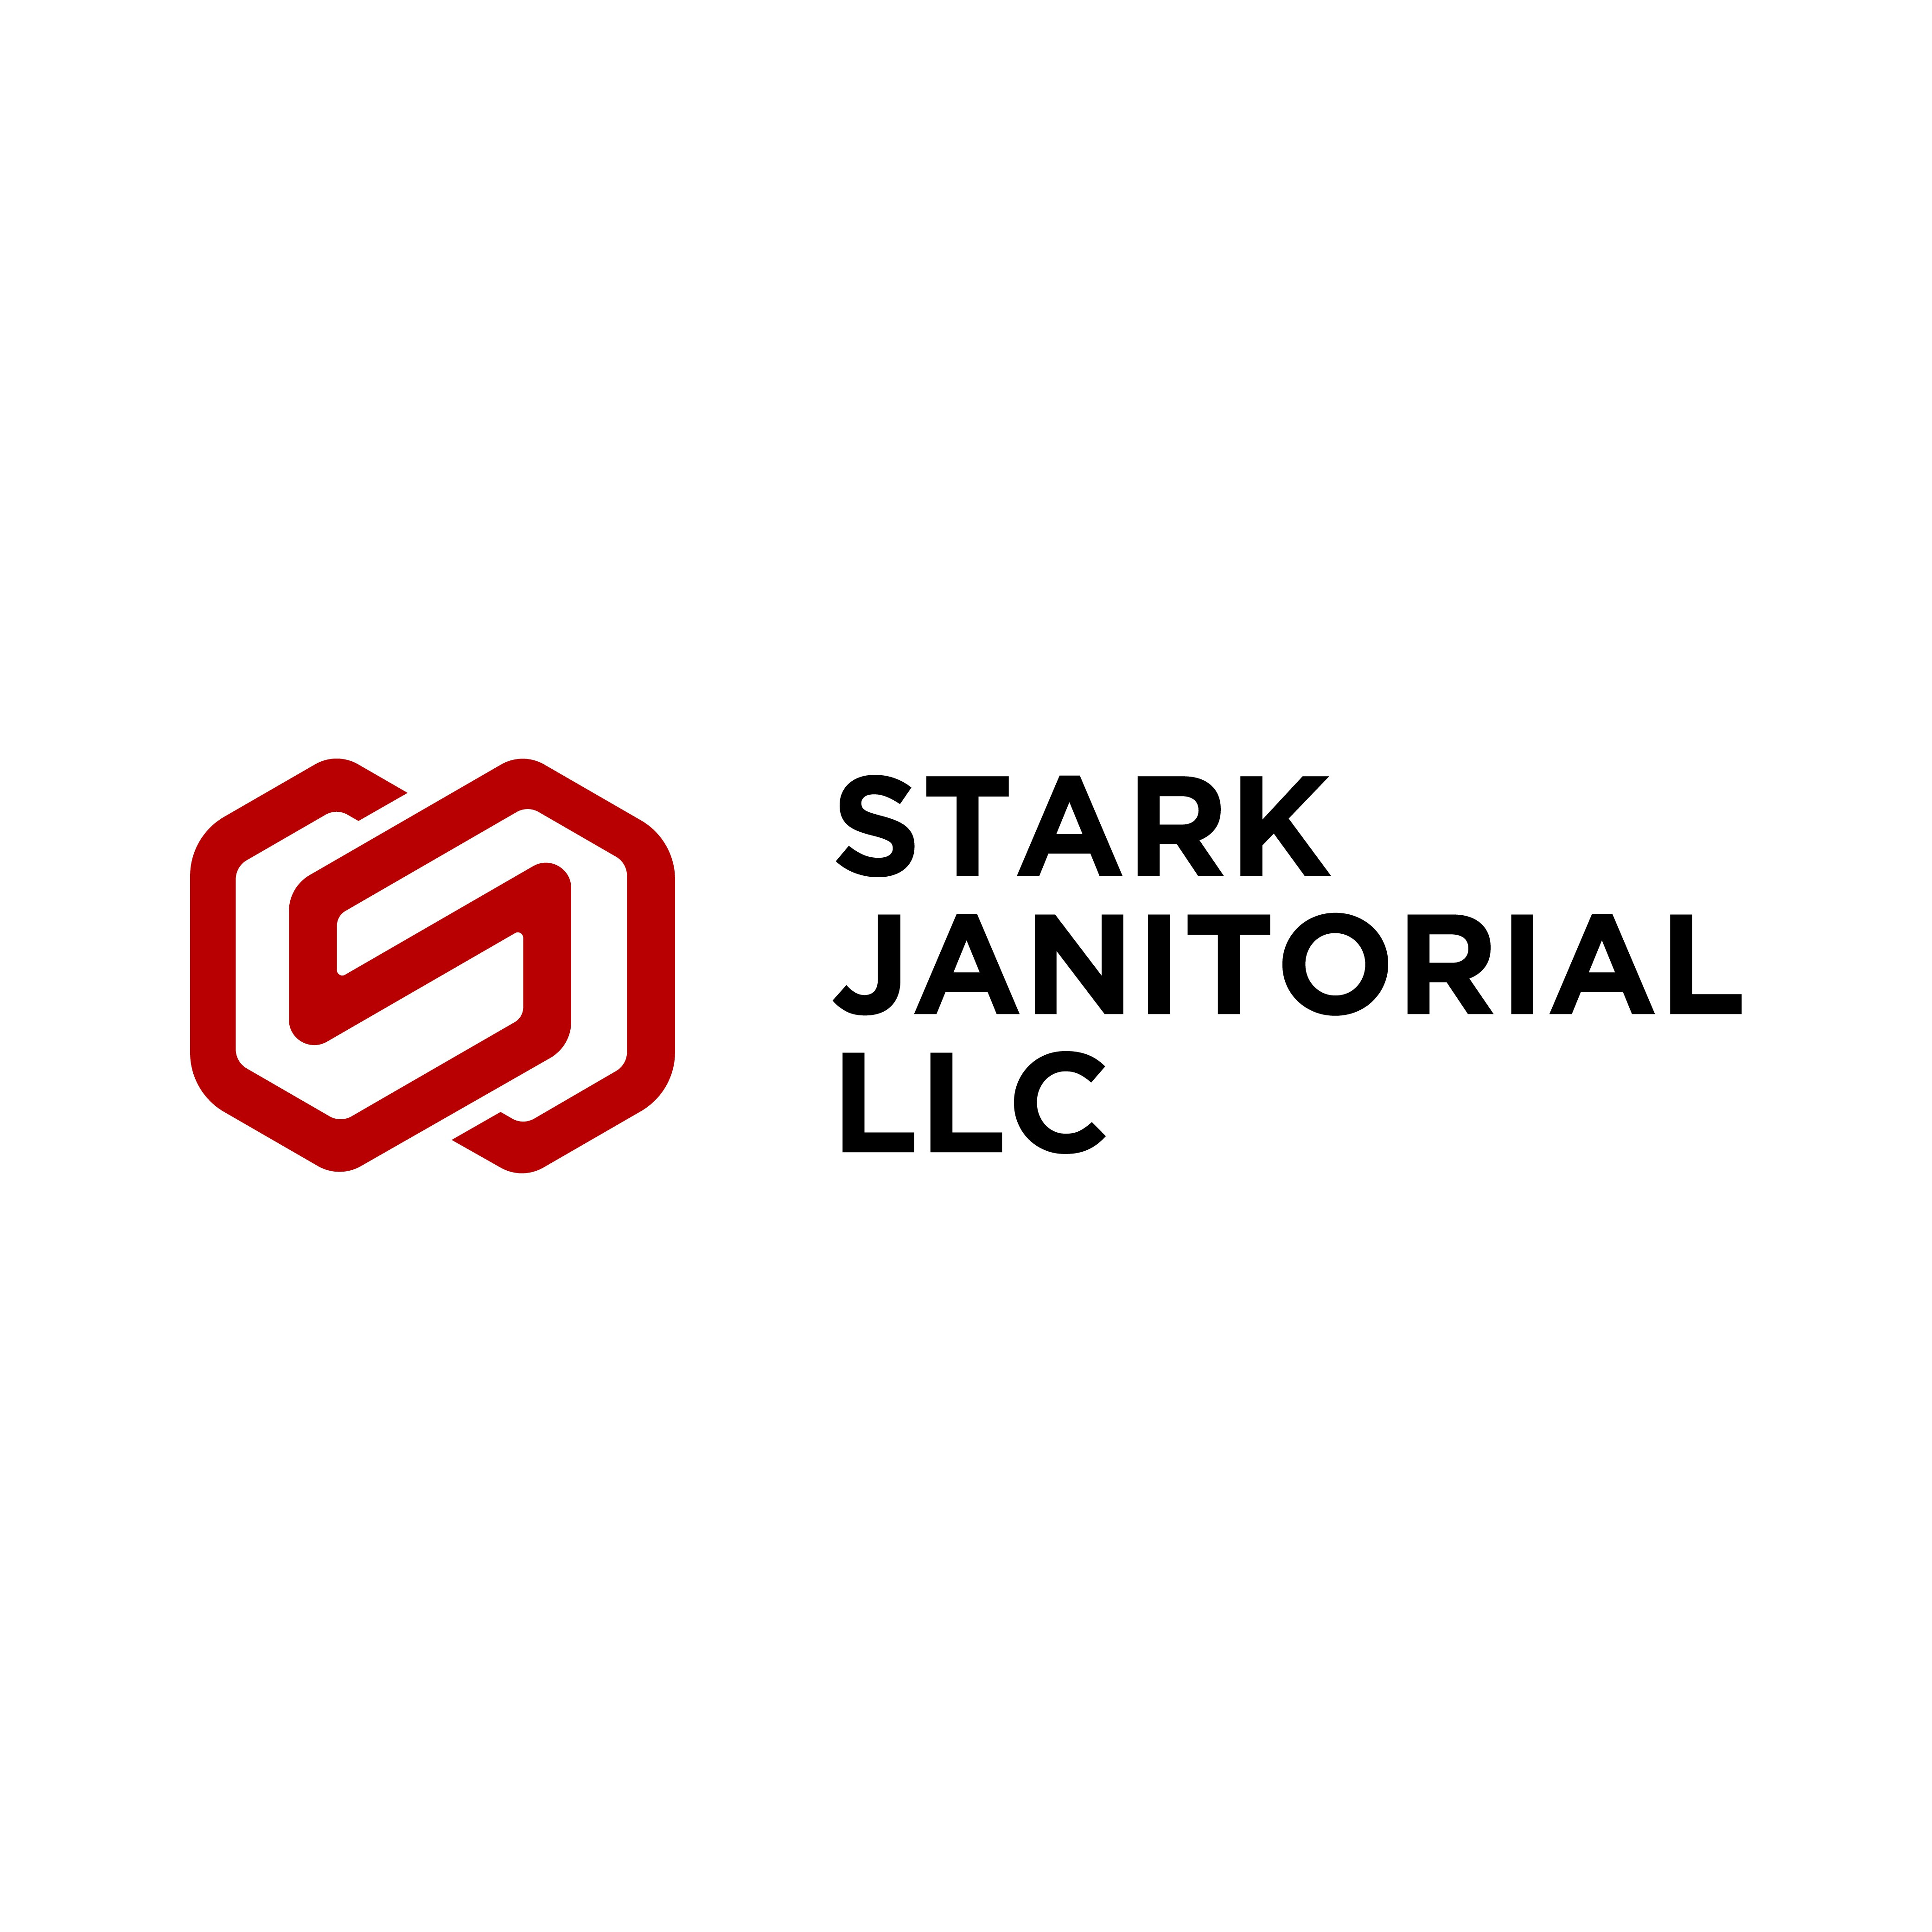 Exciting new start up logo design! Stark Janitorial!